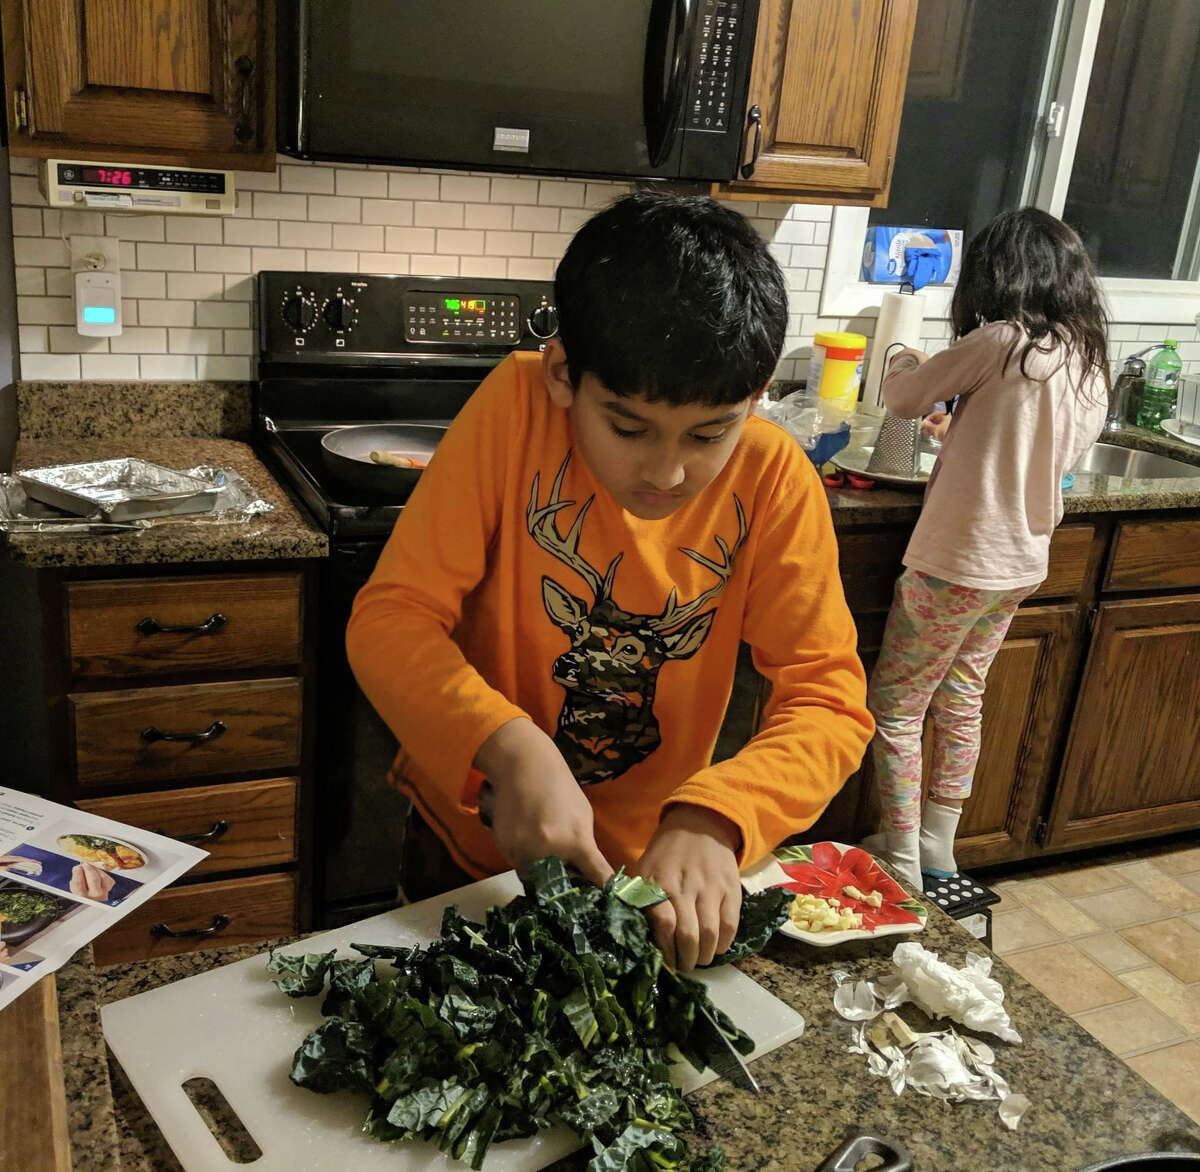 Angad Seshadri, foreground, and sister Nupur Seshadri prepare vegetables for dinner at their home in Latham. The children's mother, Nandini Seshadri, will be packing their school lunches to better monitor the nutritional content of their midday meals.